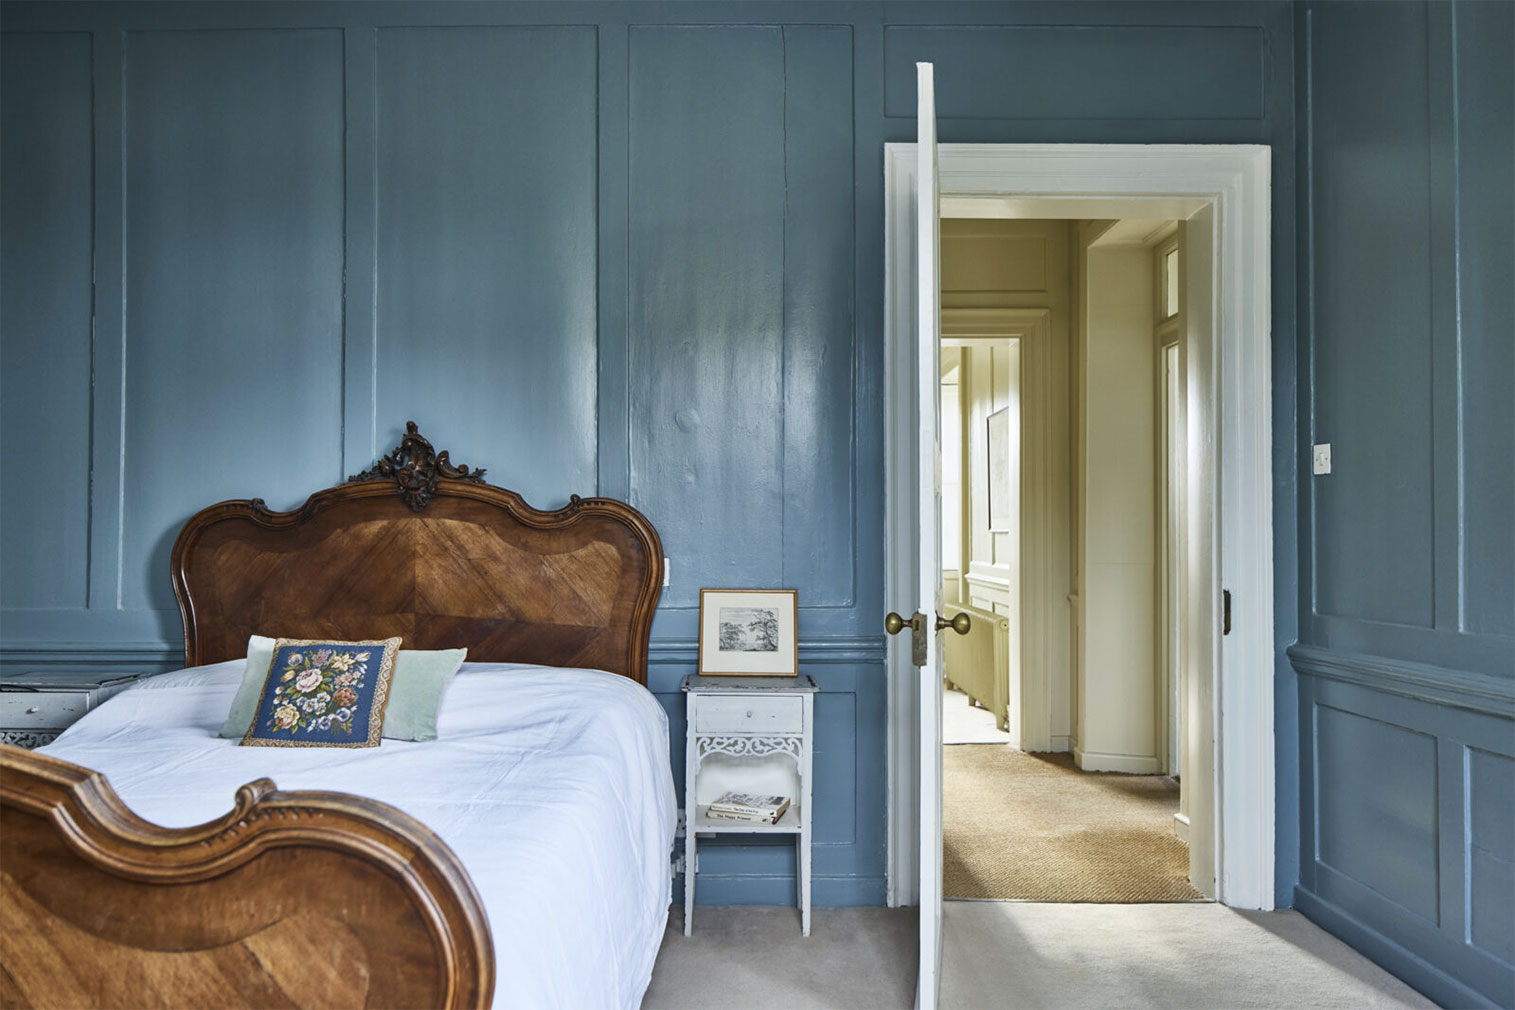 Painted panelling and period furnishings recall the Regency era